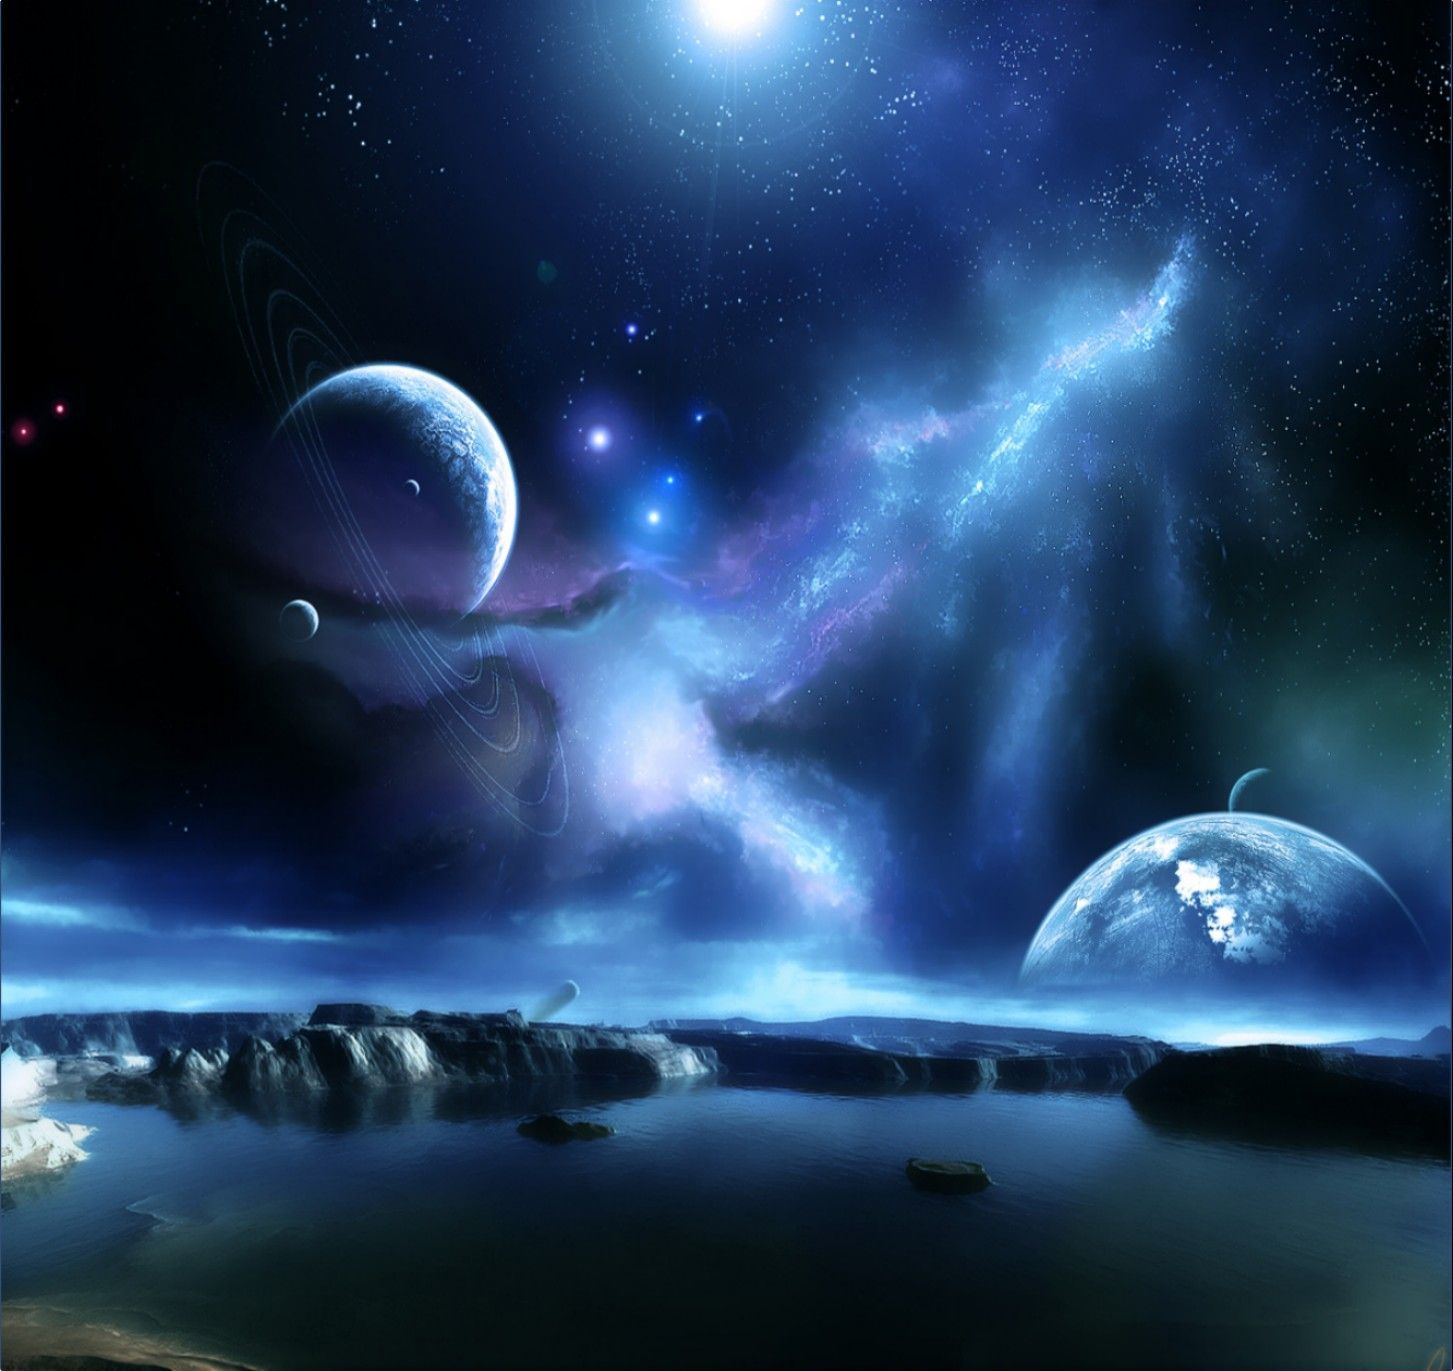 Strange universe wallpapers top free strange universe - Final space wallpaper ...